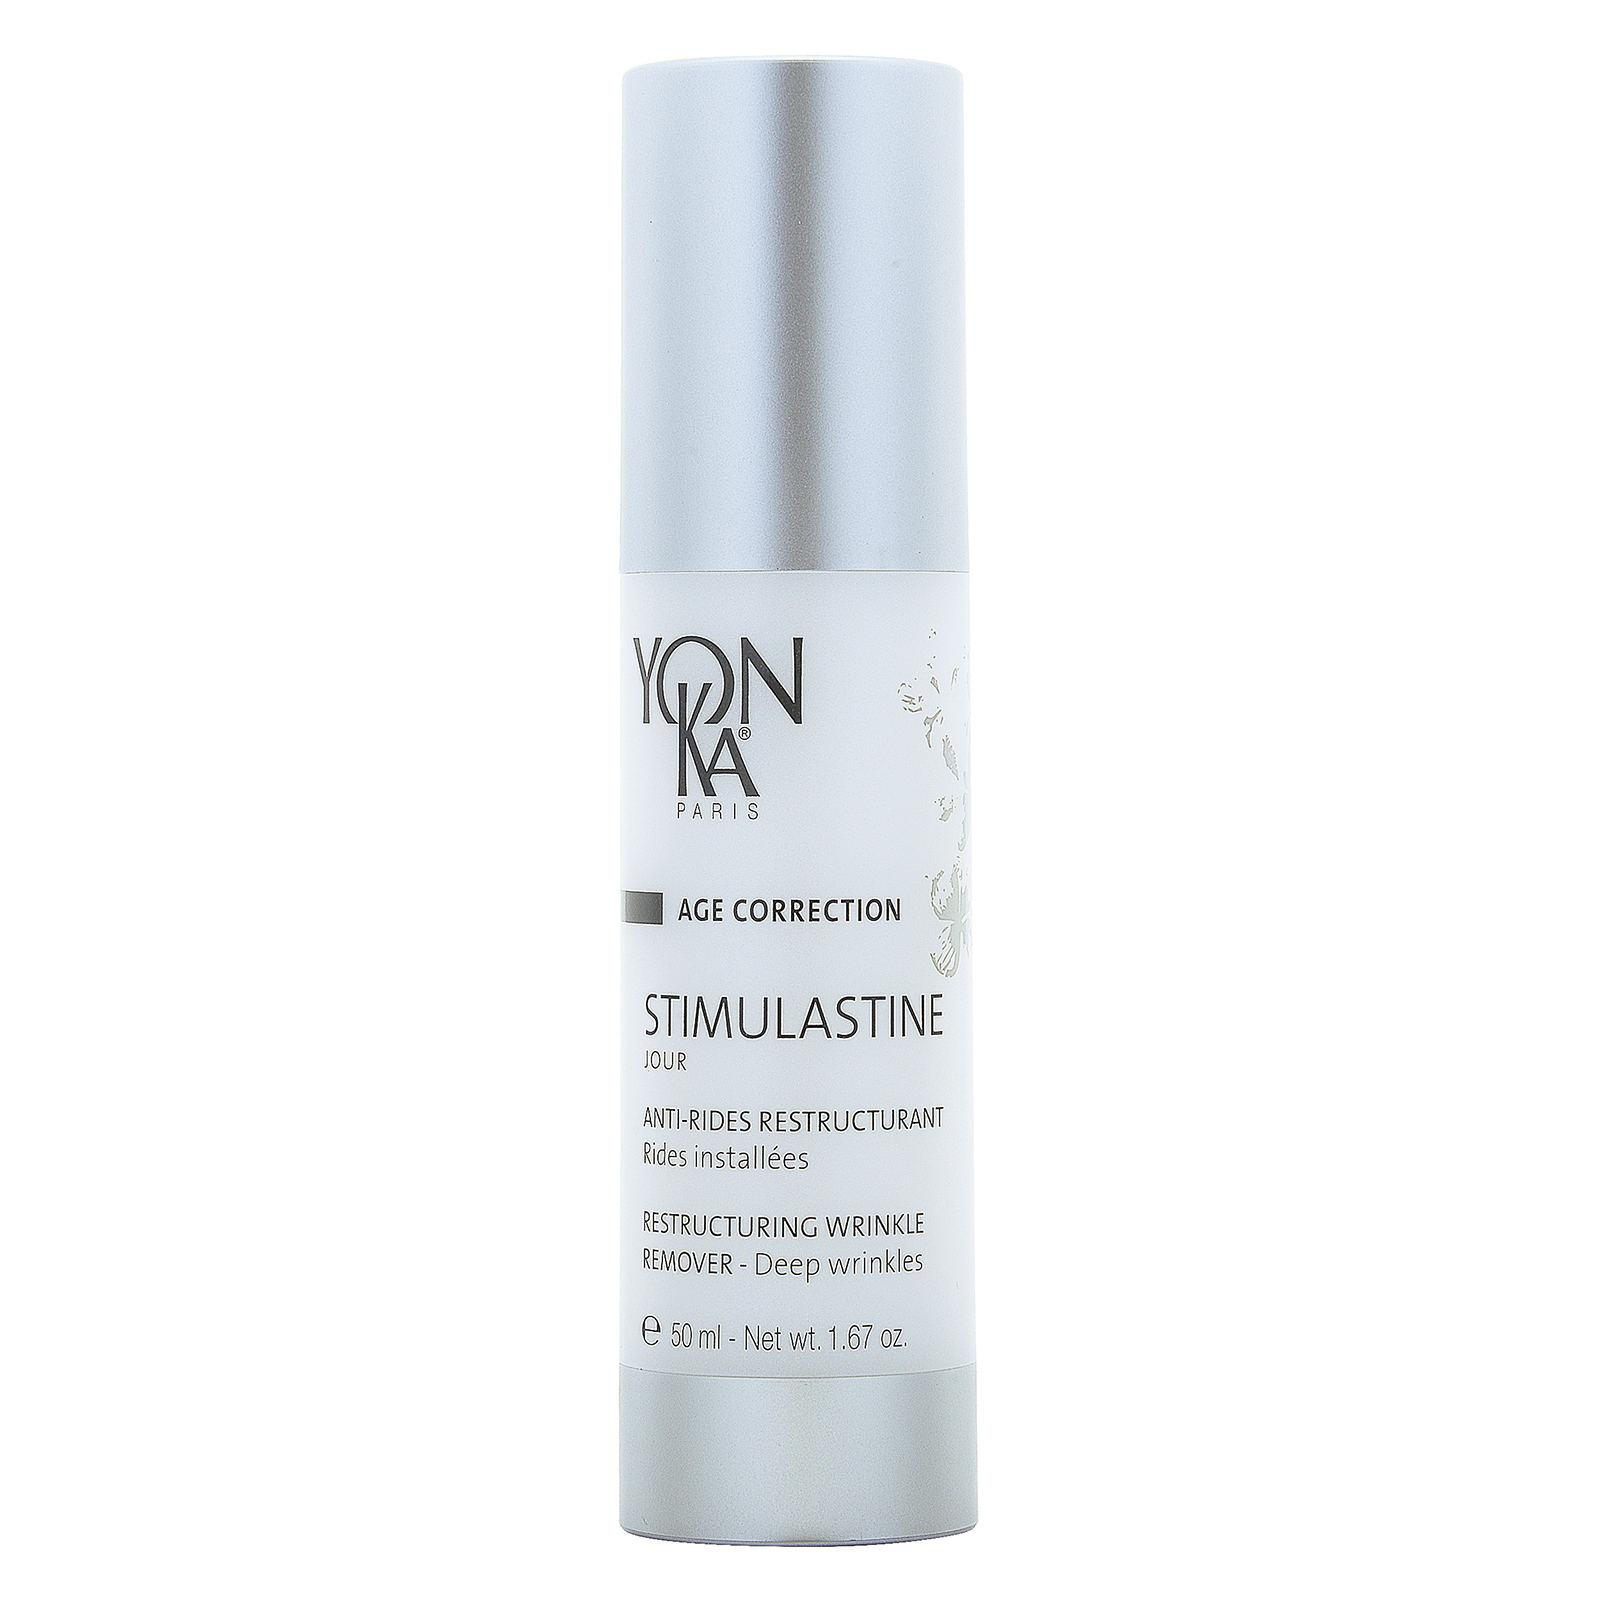 YON-KA Age Correction Stimulastine Jour Day Cream (Restructuring Wrinkle Remover) 1.67oz, 50ml